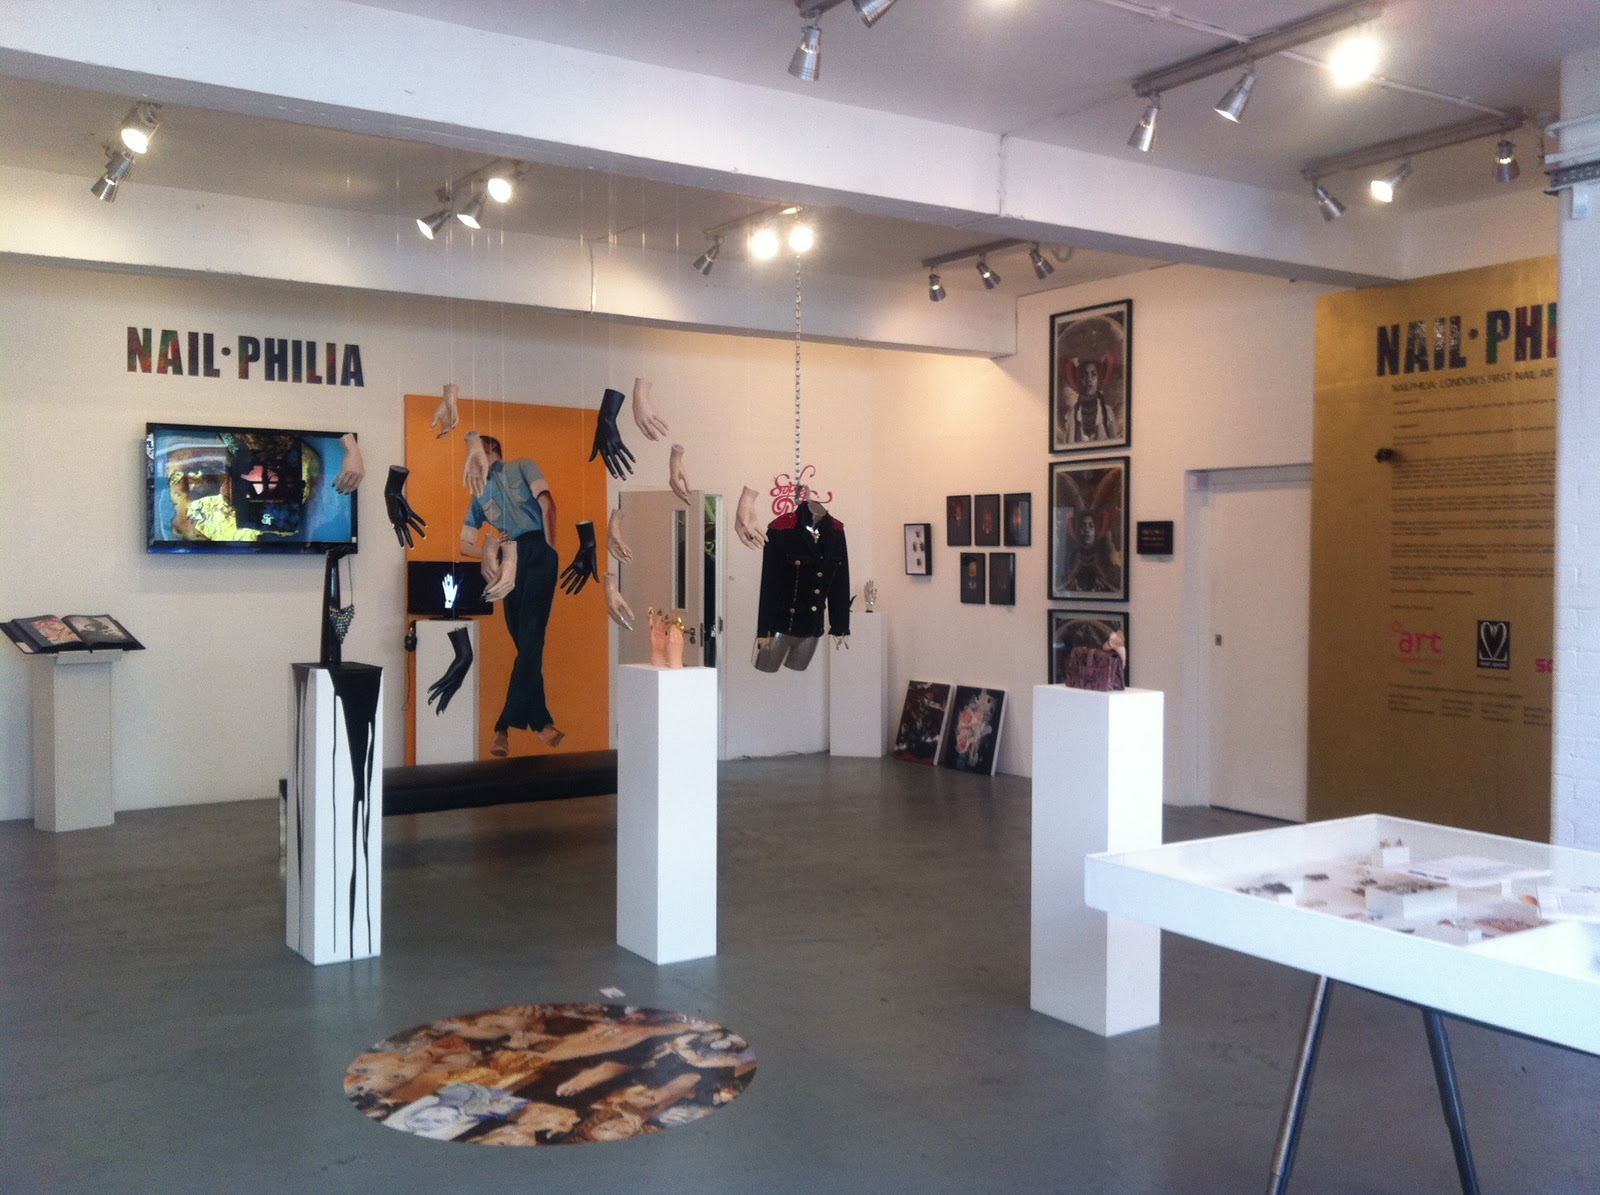 London Lacquer Nail Philia A Nail Art Exhibition